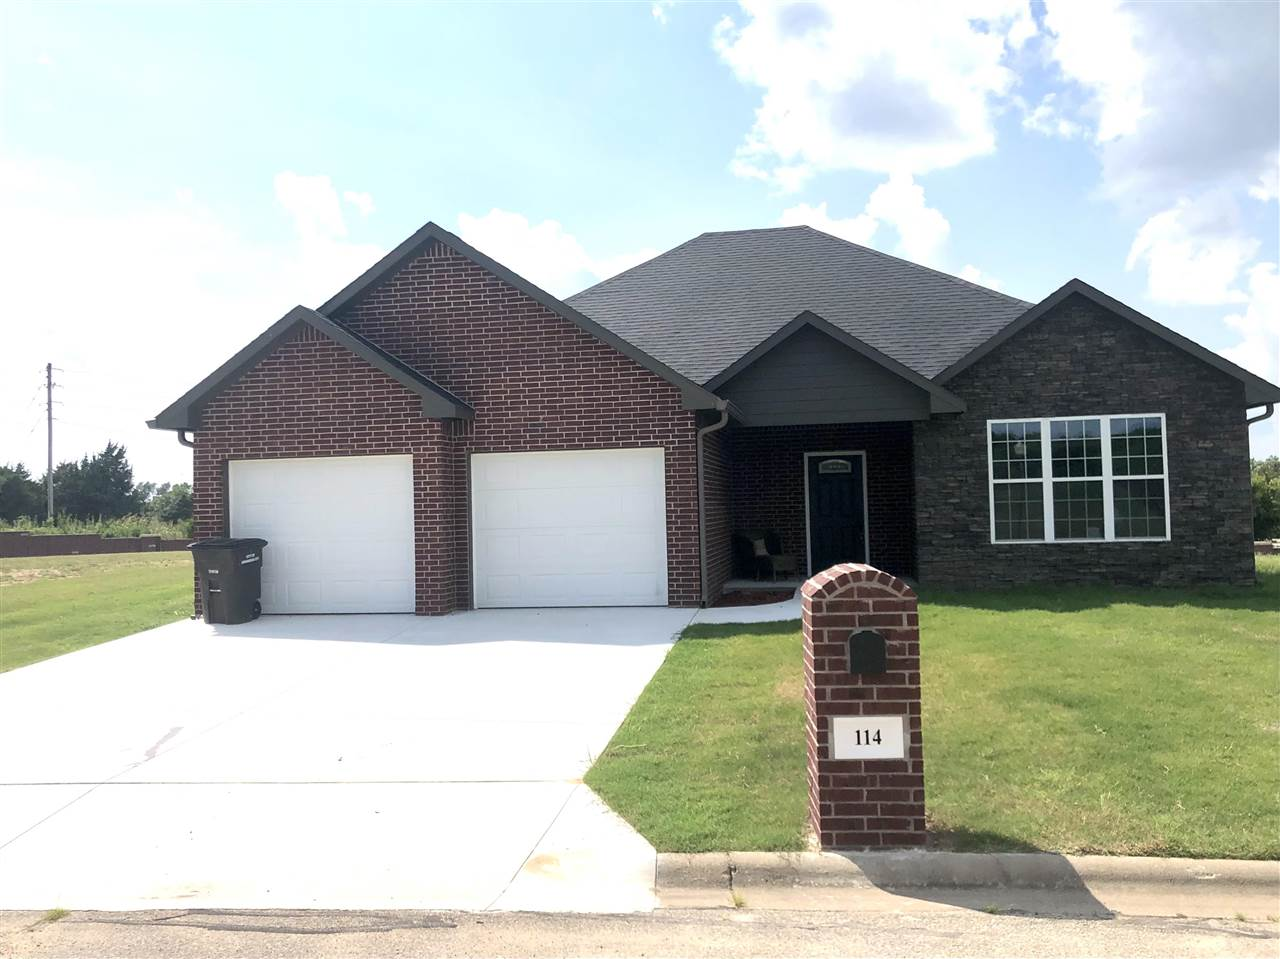 NEW CONSTRUCTION COMPLETE!!! BRAND NEW HOME LOCATED IN COUNTRY CLUB ESTATES! Check out this ALL bric